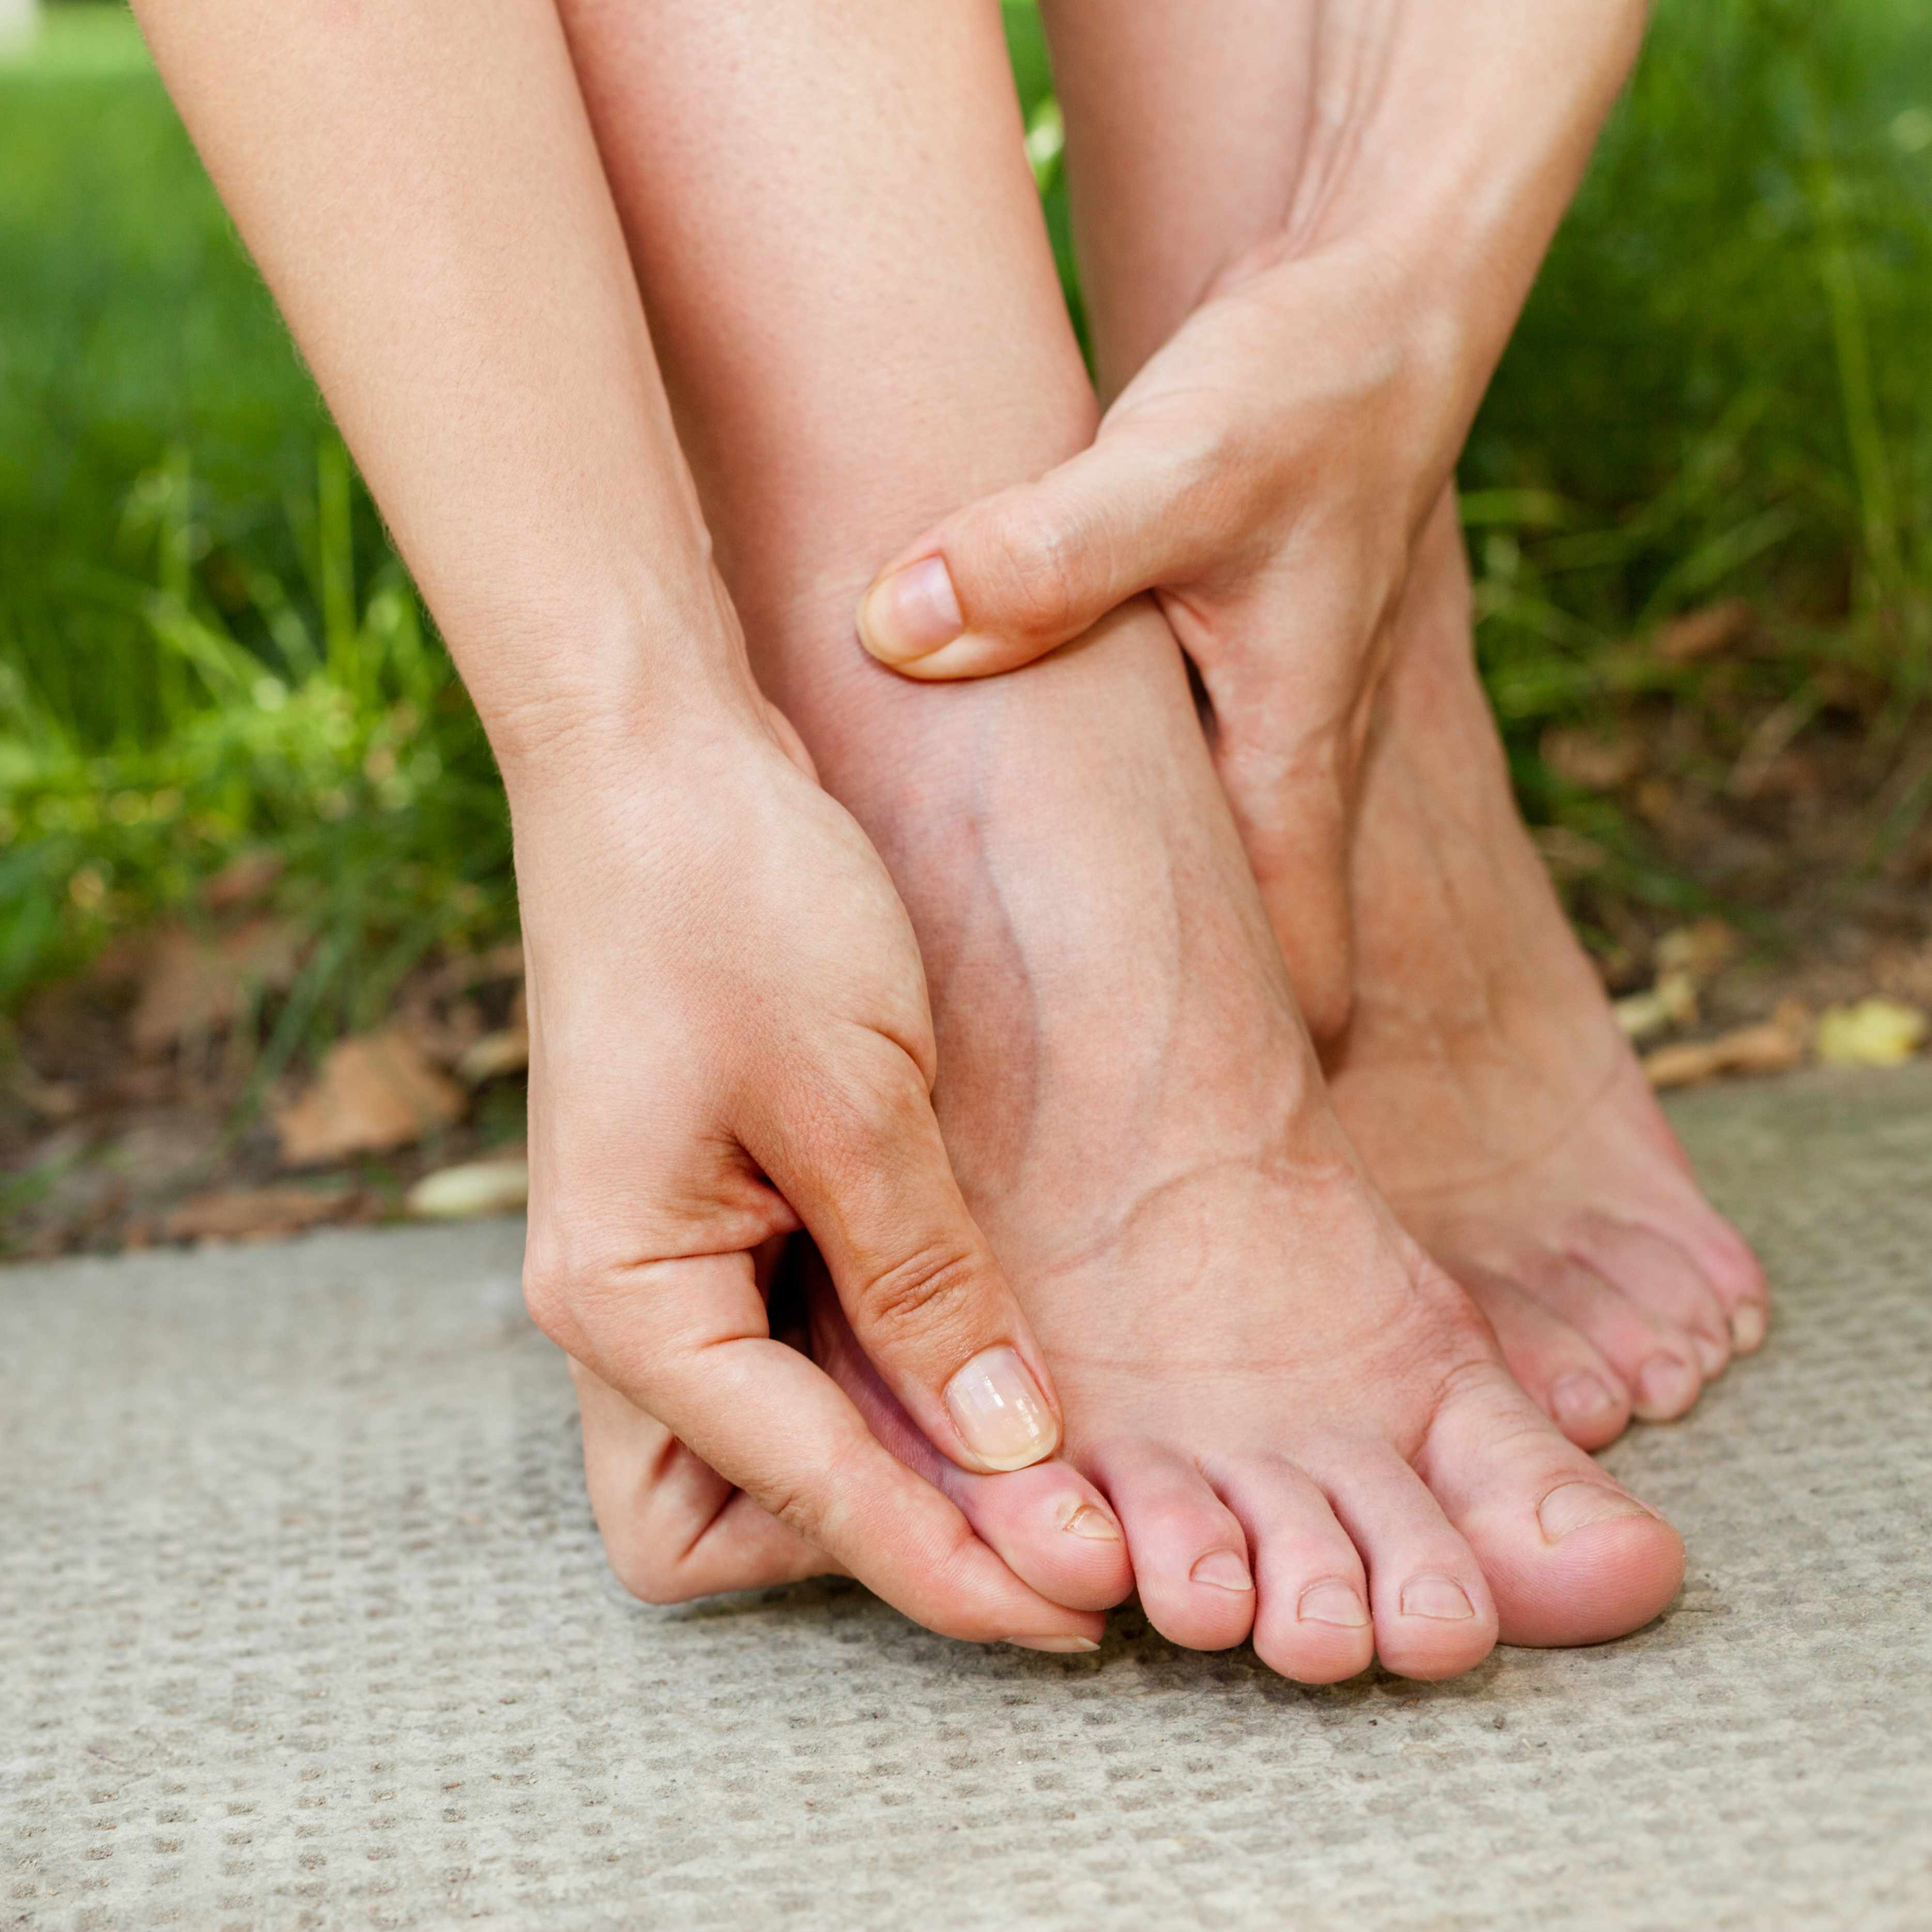 a woman with foot pain, perhaps with corns and calluses, rubbing her toes